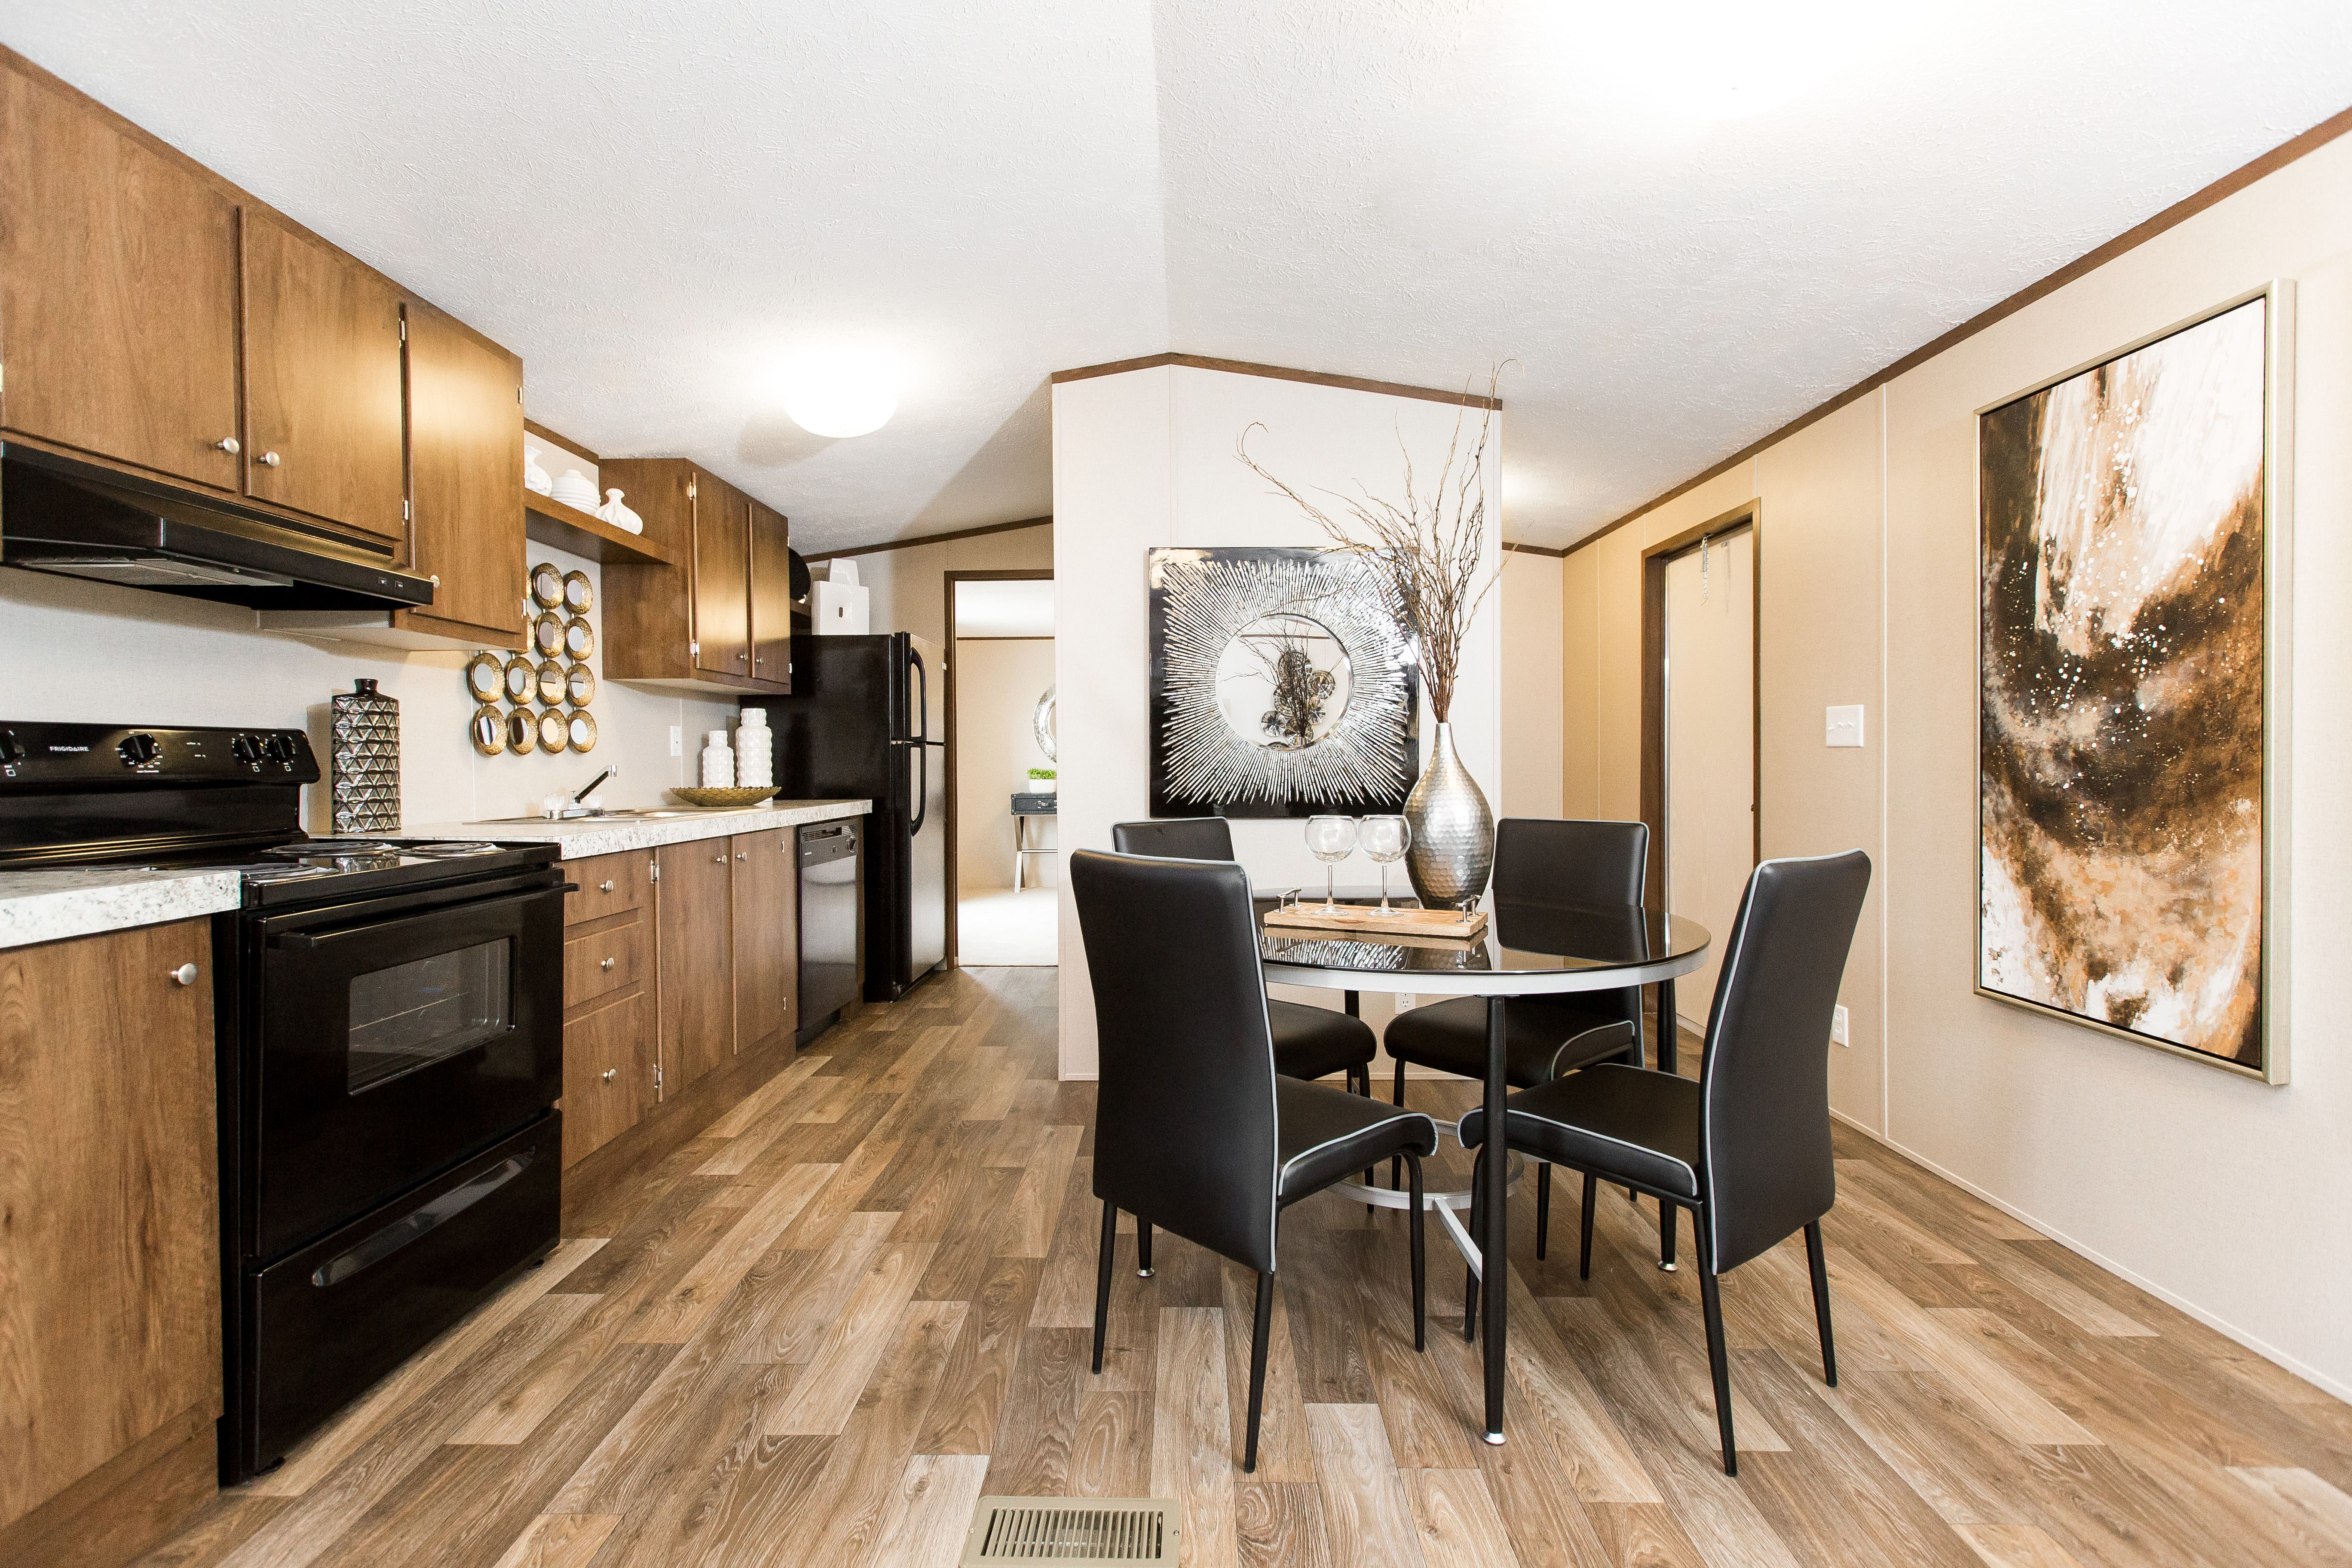 euphoria 3 bedroom 2 bathroom home is available for